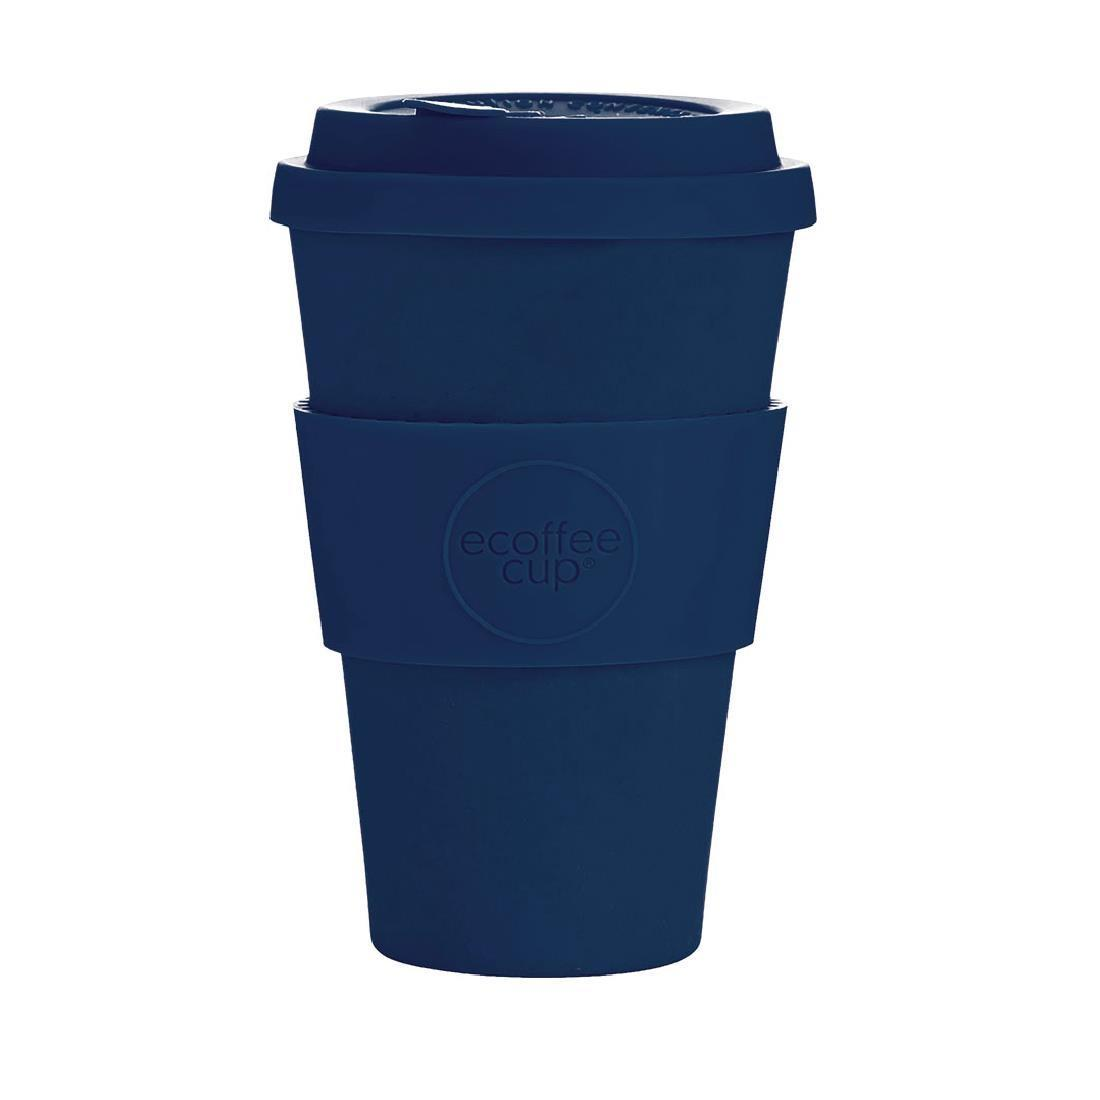 Ecoffee Cup Bamboo Reusable Coffee Cup Dark Energy Navy 14oz - Each - DY492